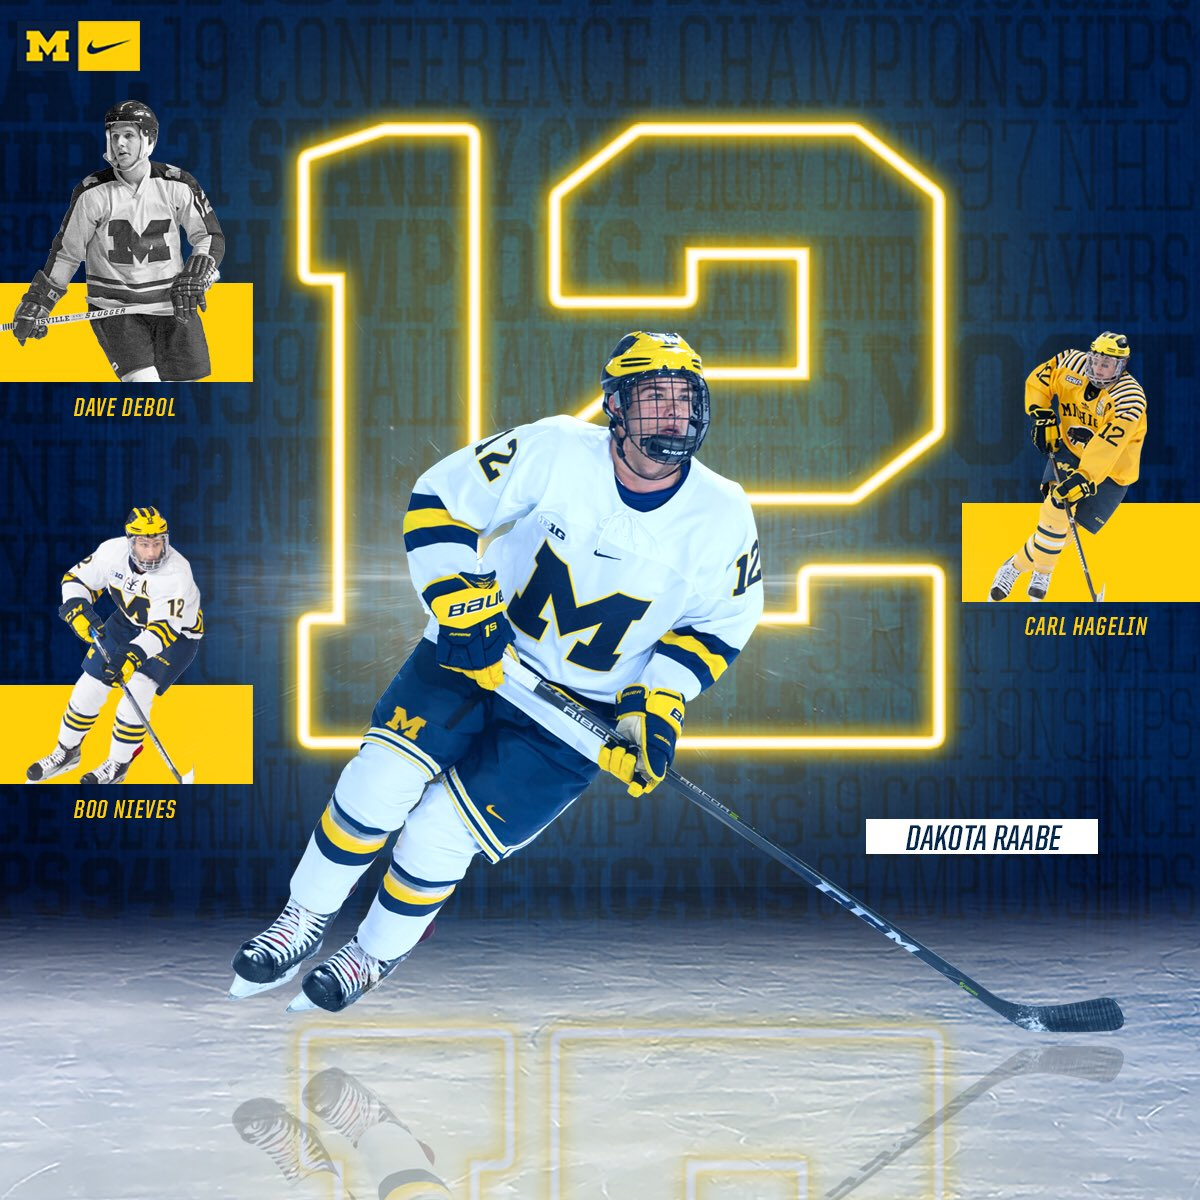 cheaper 3dfc1 76df1 Michigan Hockey on Twitter: